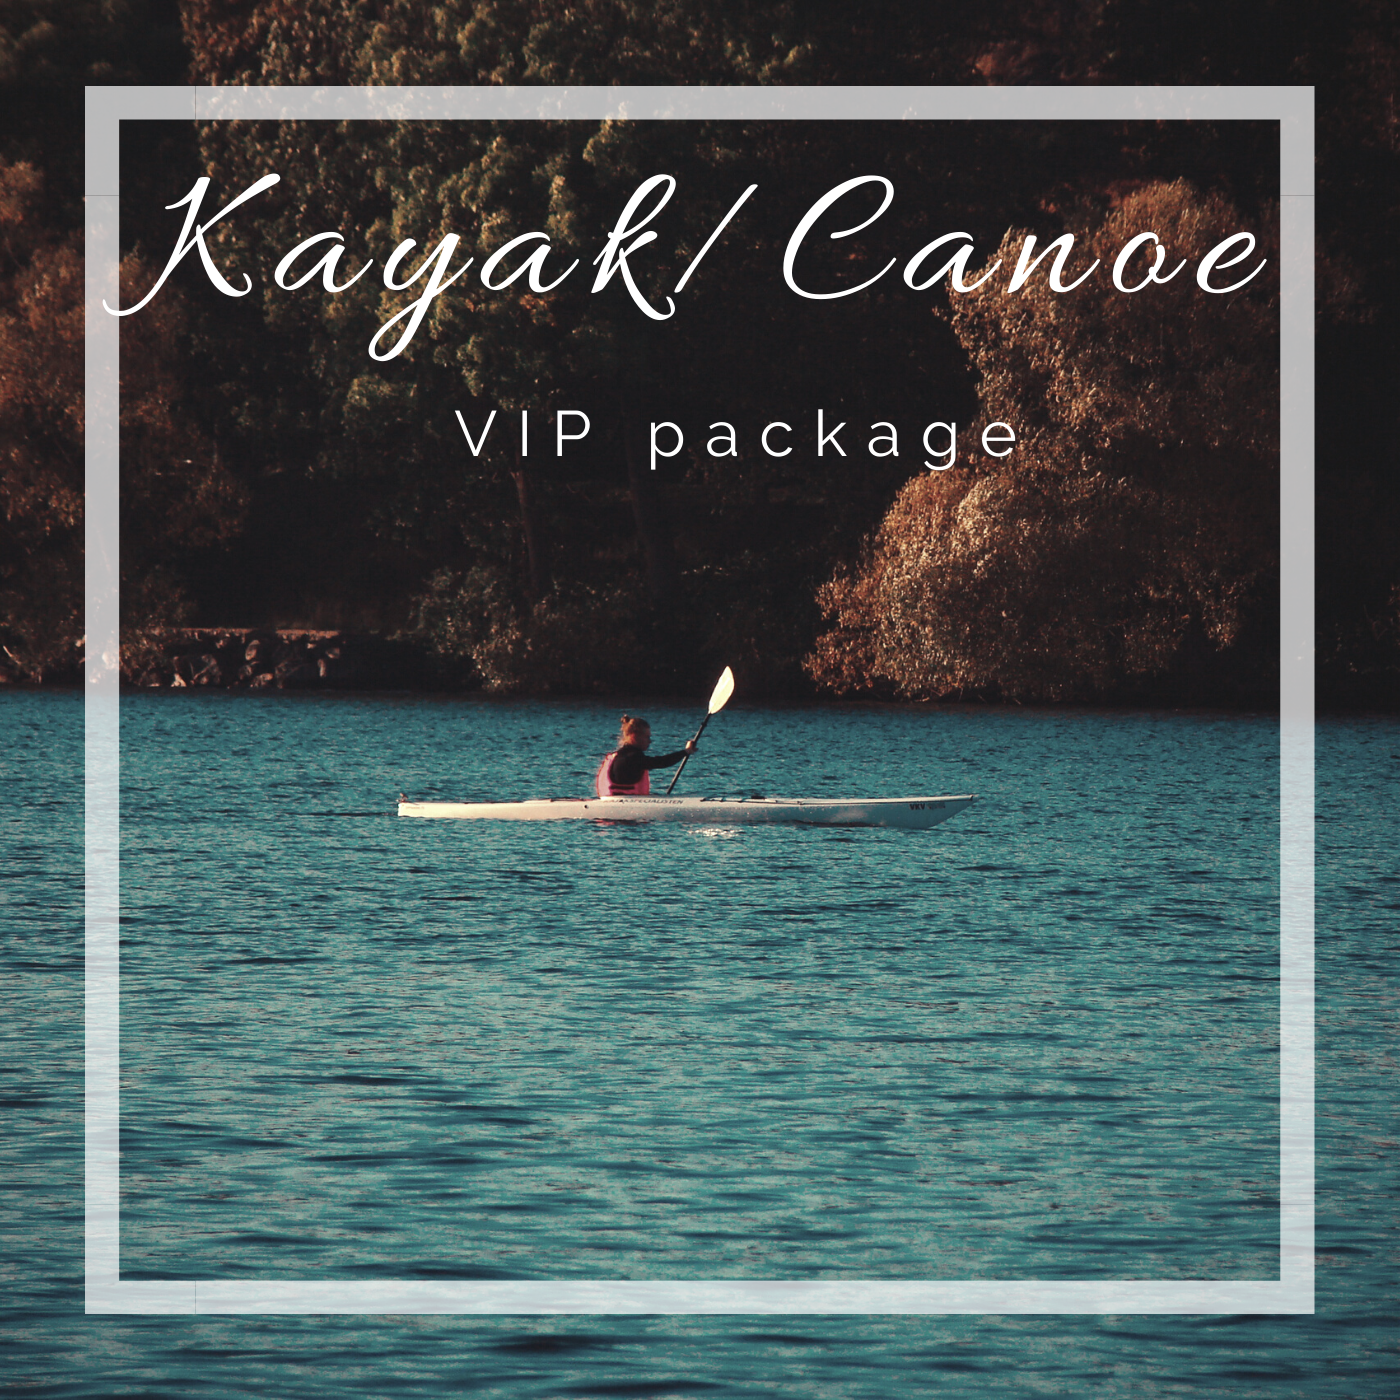 Happy Camper Adventures VIP Kayak/Canoe package